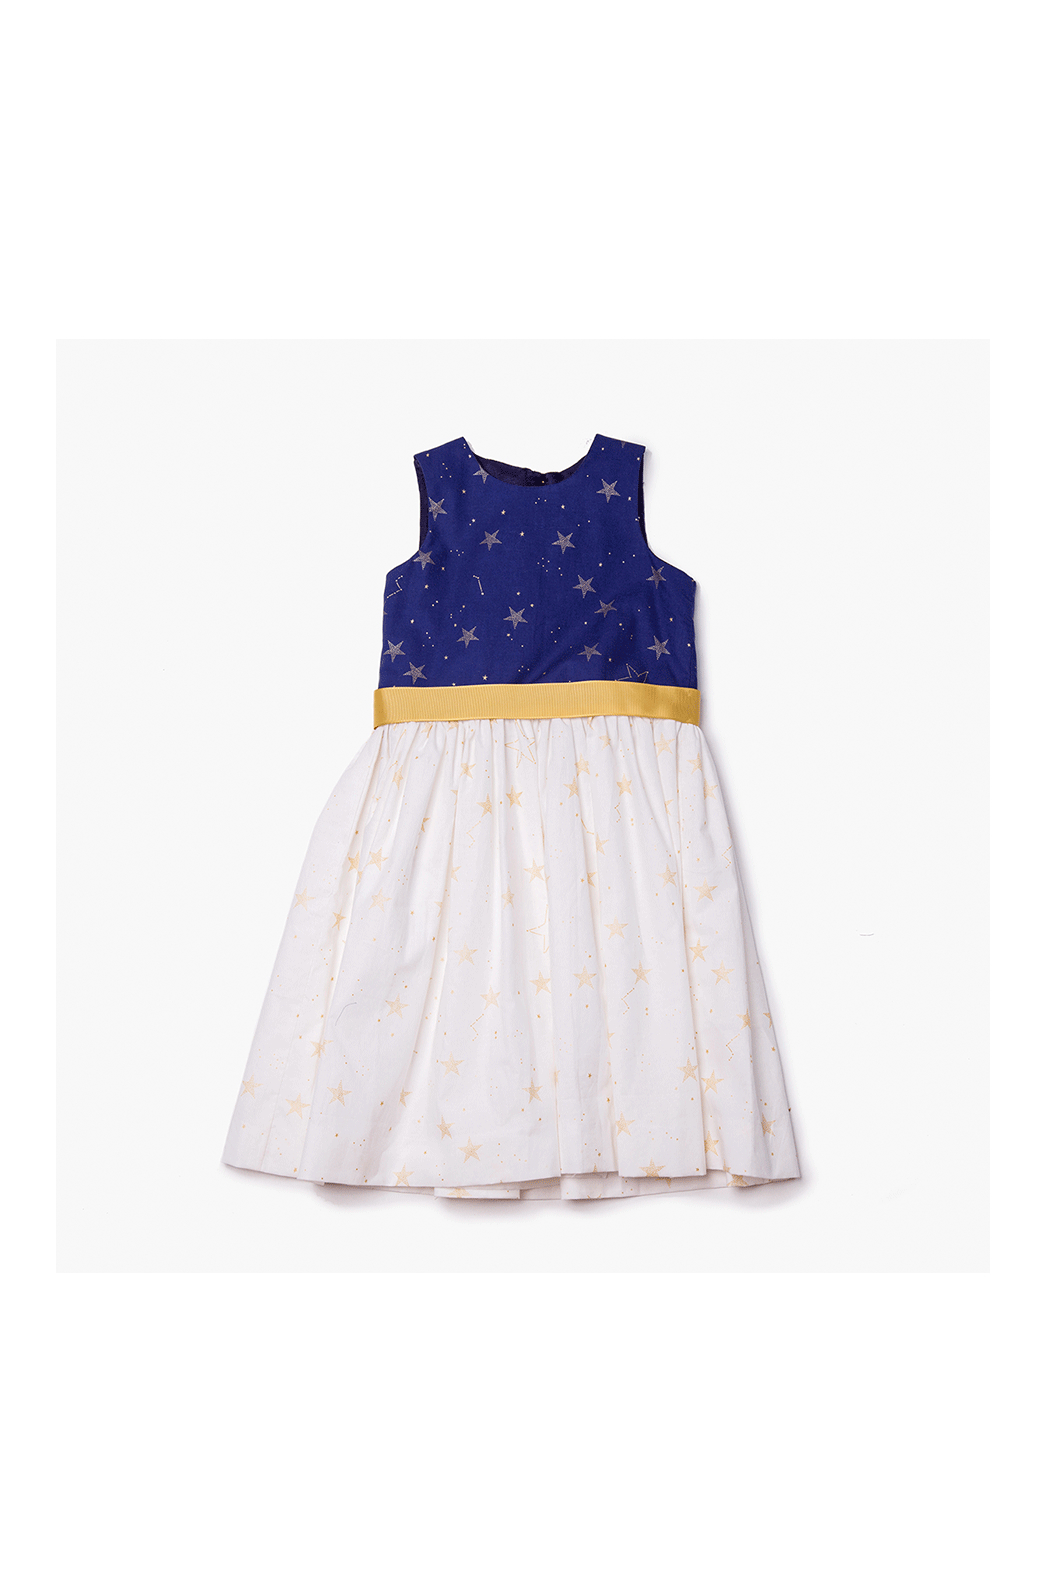 Mandy by Gema Amanda Dress Lucky Stars Navy and White - Front Full Image